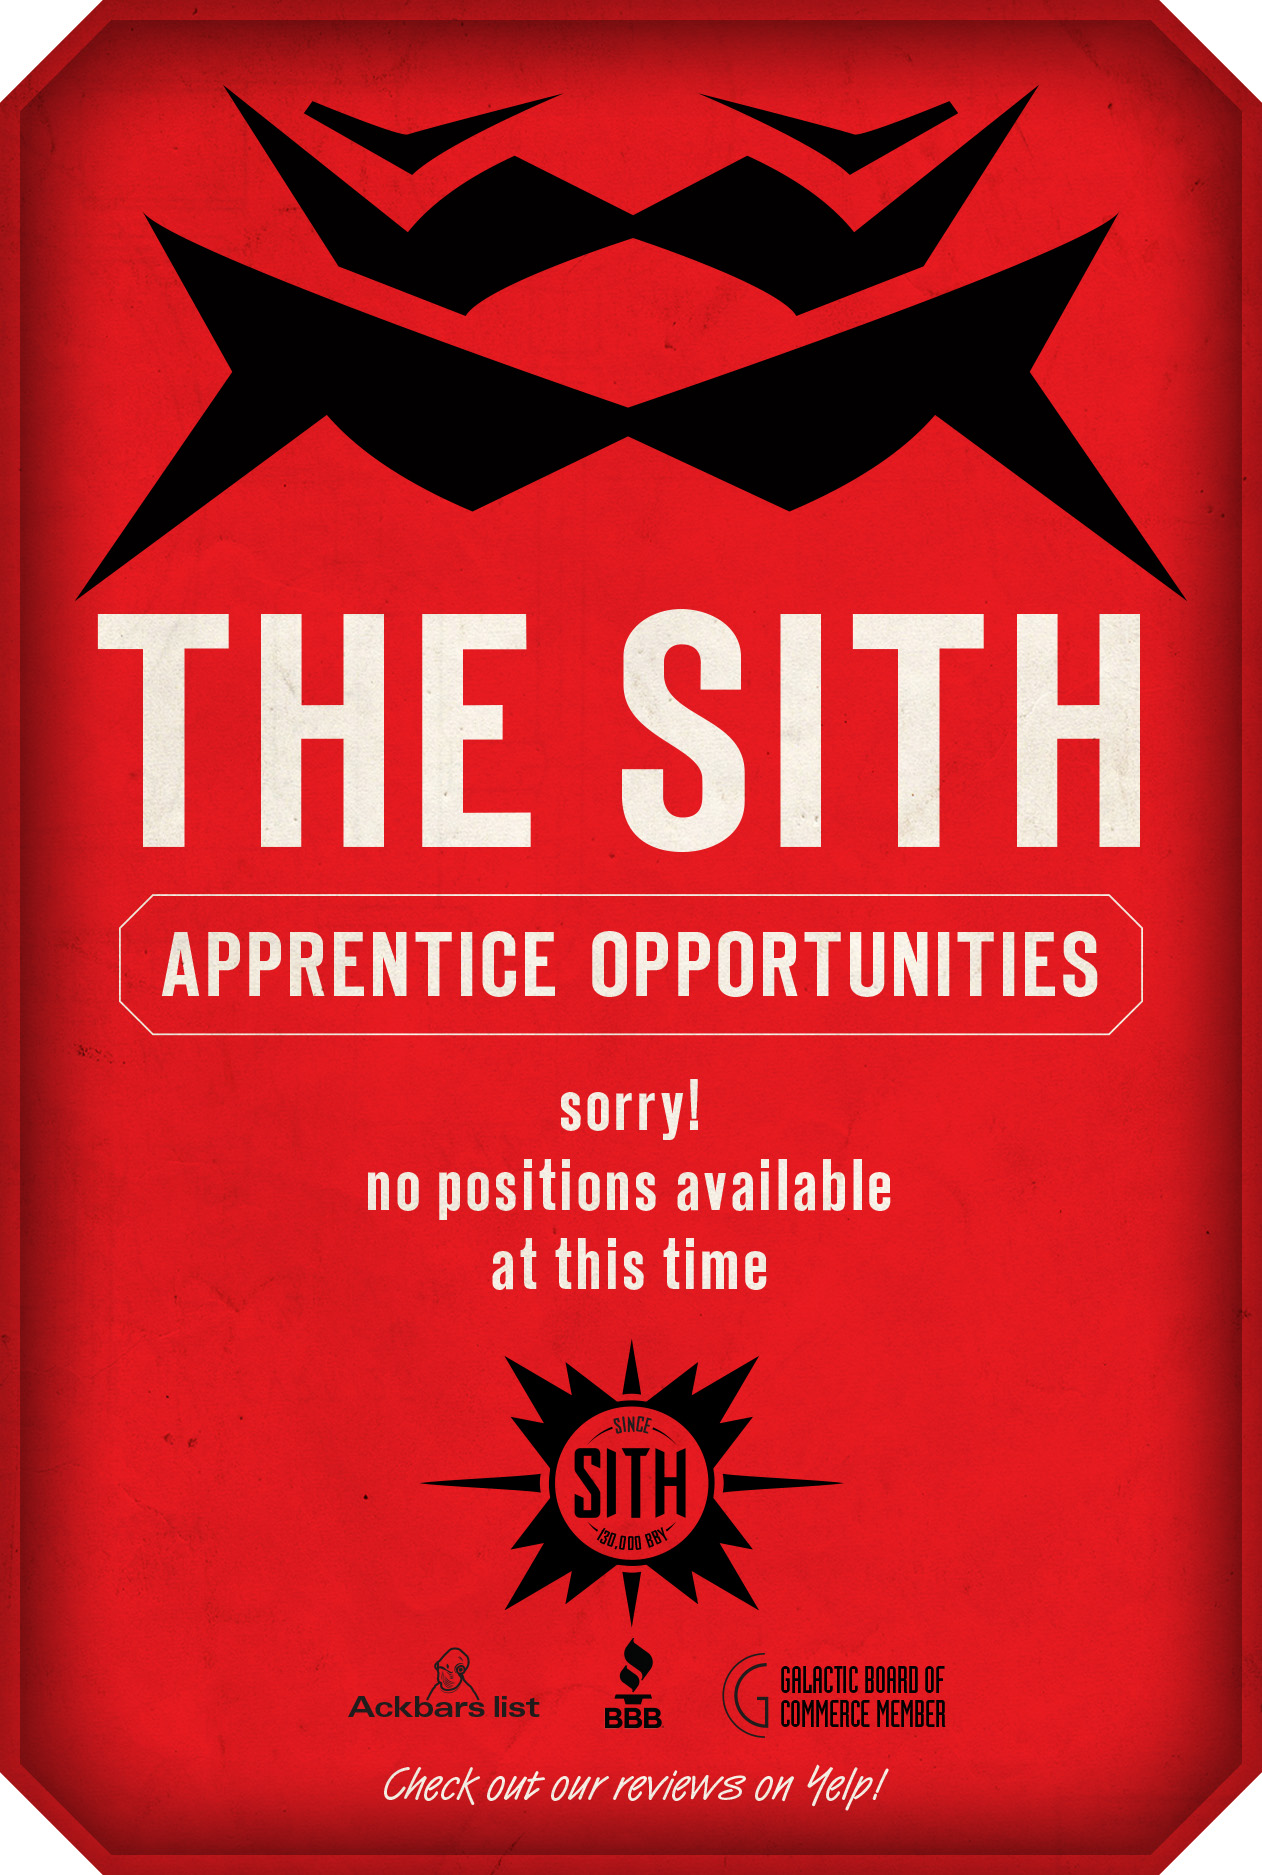 JOIN THE SITH Employment Page